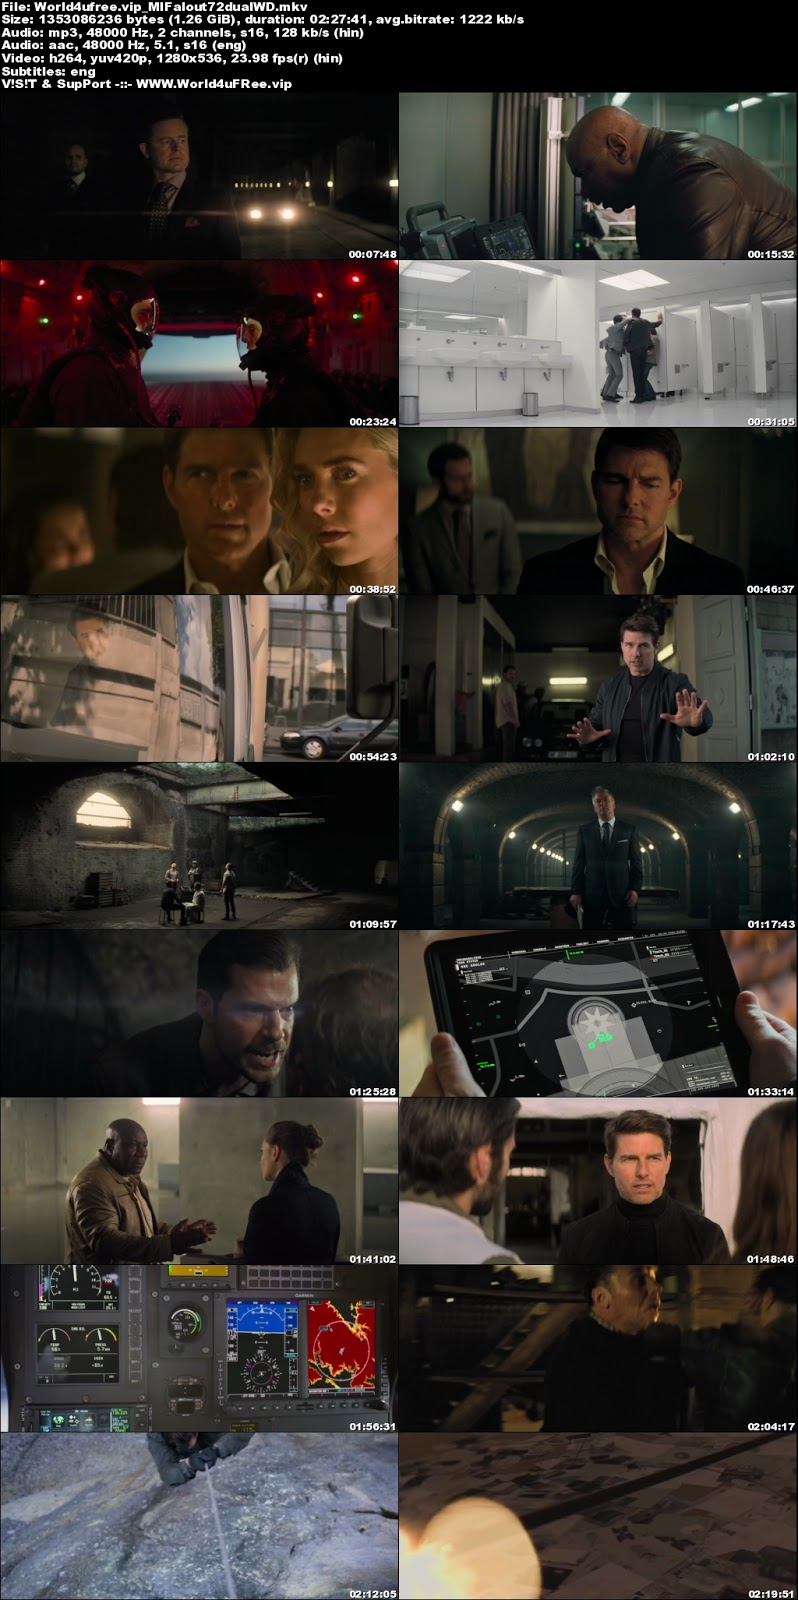 Mission Impossible Fallout 2018 Dual Audio 720p HDRip 1.2Gb world4ufree.fun, hollywood movie Mission Impossible Fallout 2018 hindi dubbed dual audio hindi english languages original audio 720p BRRip hdrip free download 700mb movies download or watch online at world4ufree.fun